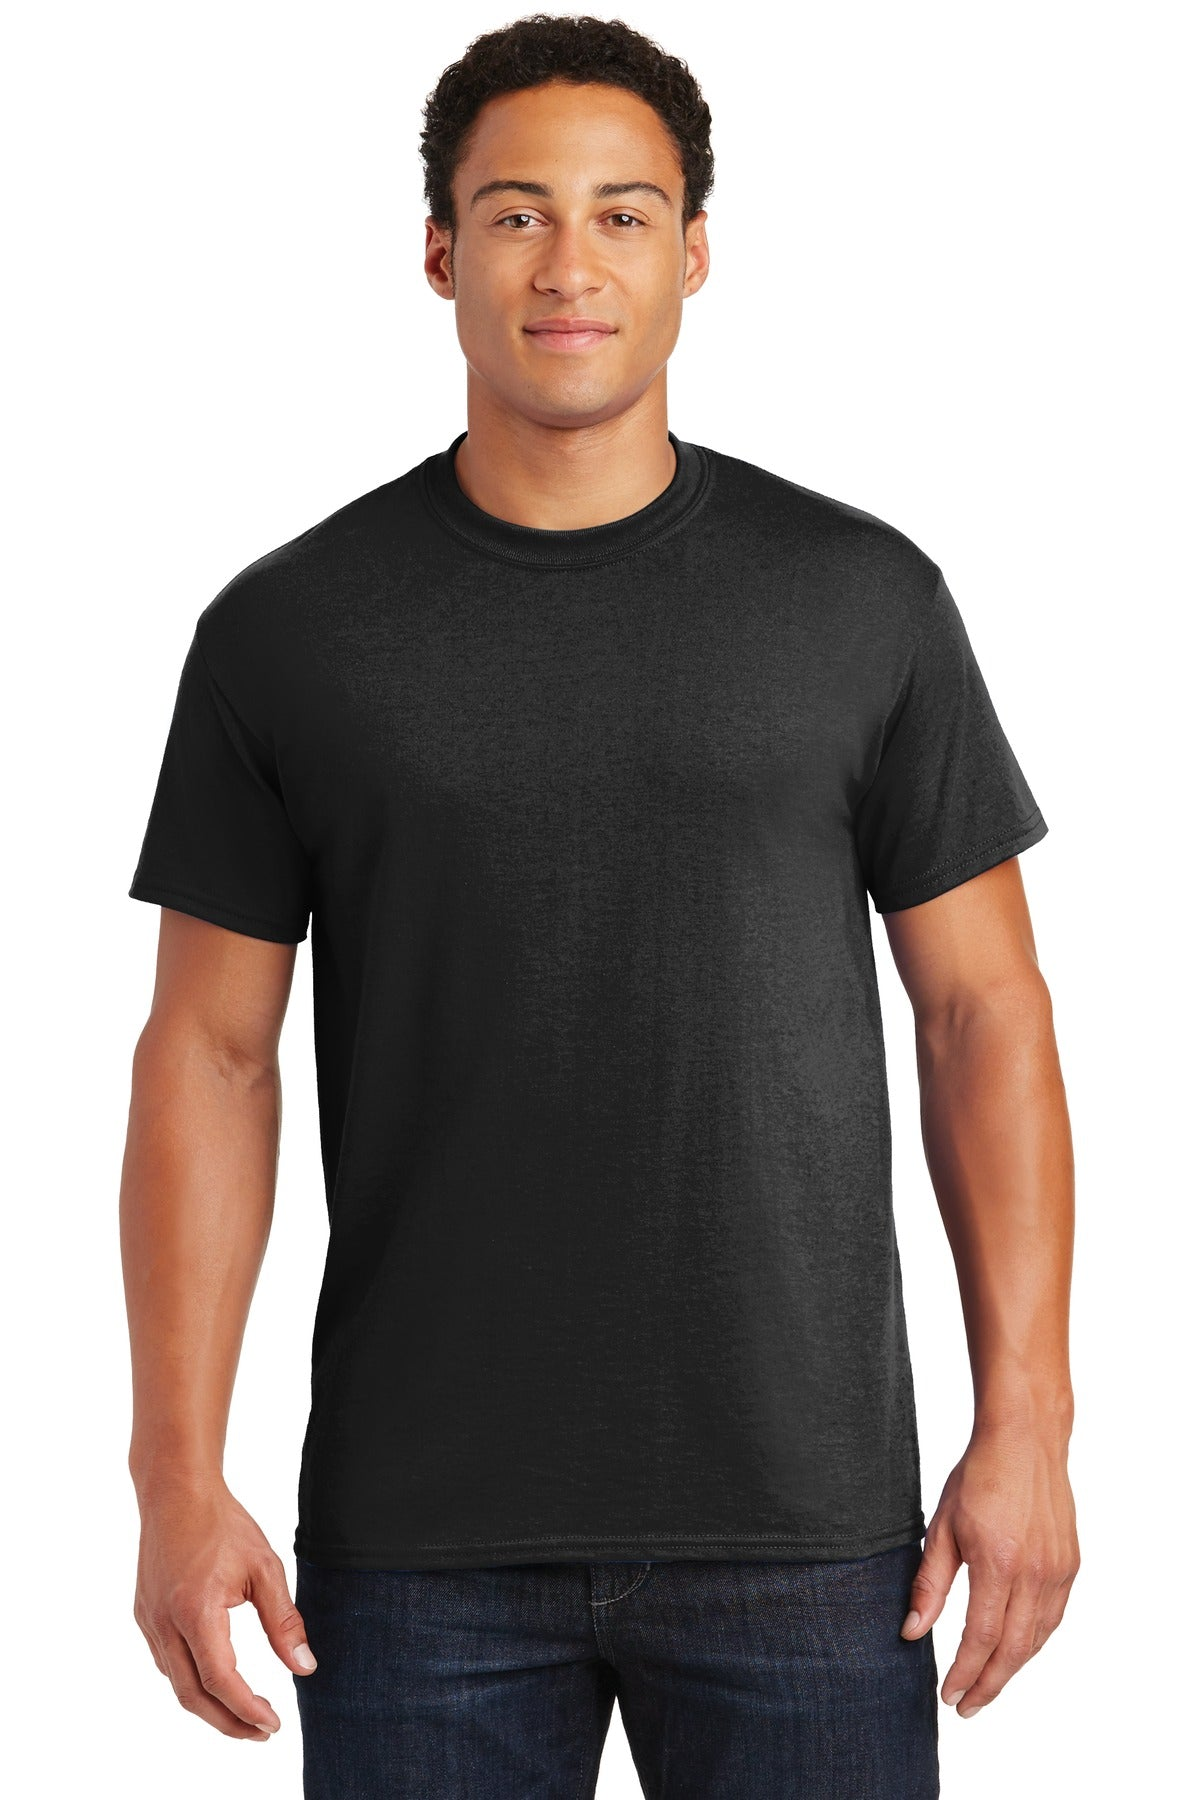 Black Gildan DryBlend 50 Cotton/50 Poly T-Shirt.